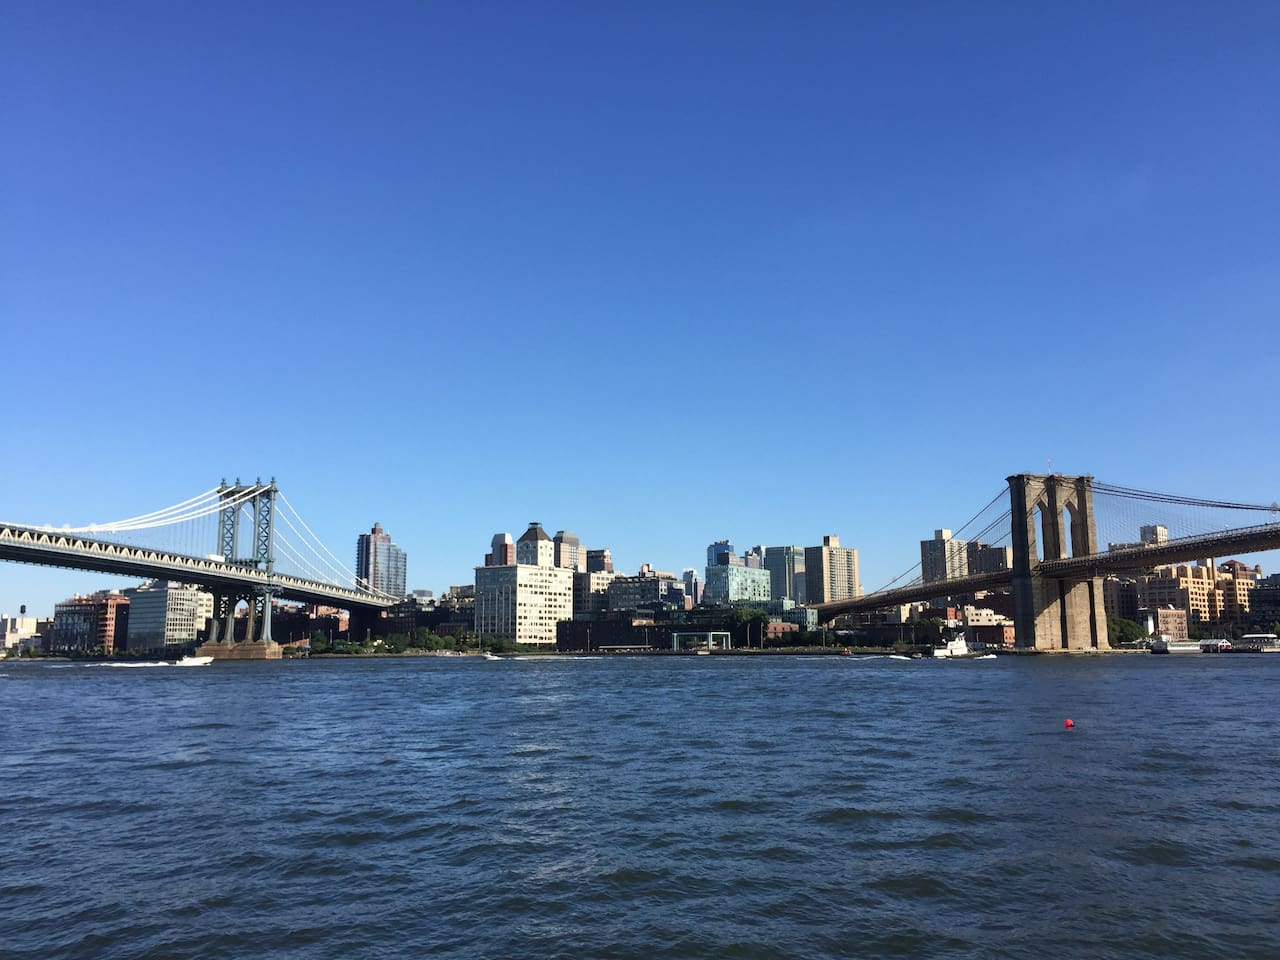 We are just steps away from East River, the gorgeous Brooklyn Bridge (right) and Manhattan Bridge (left).